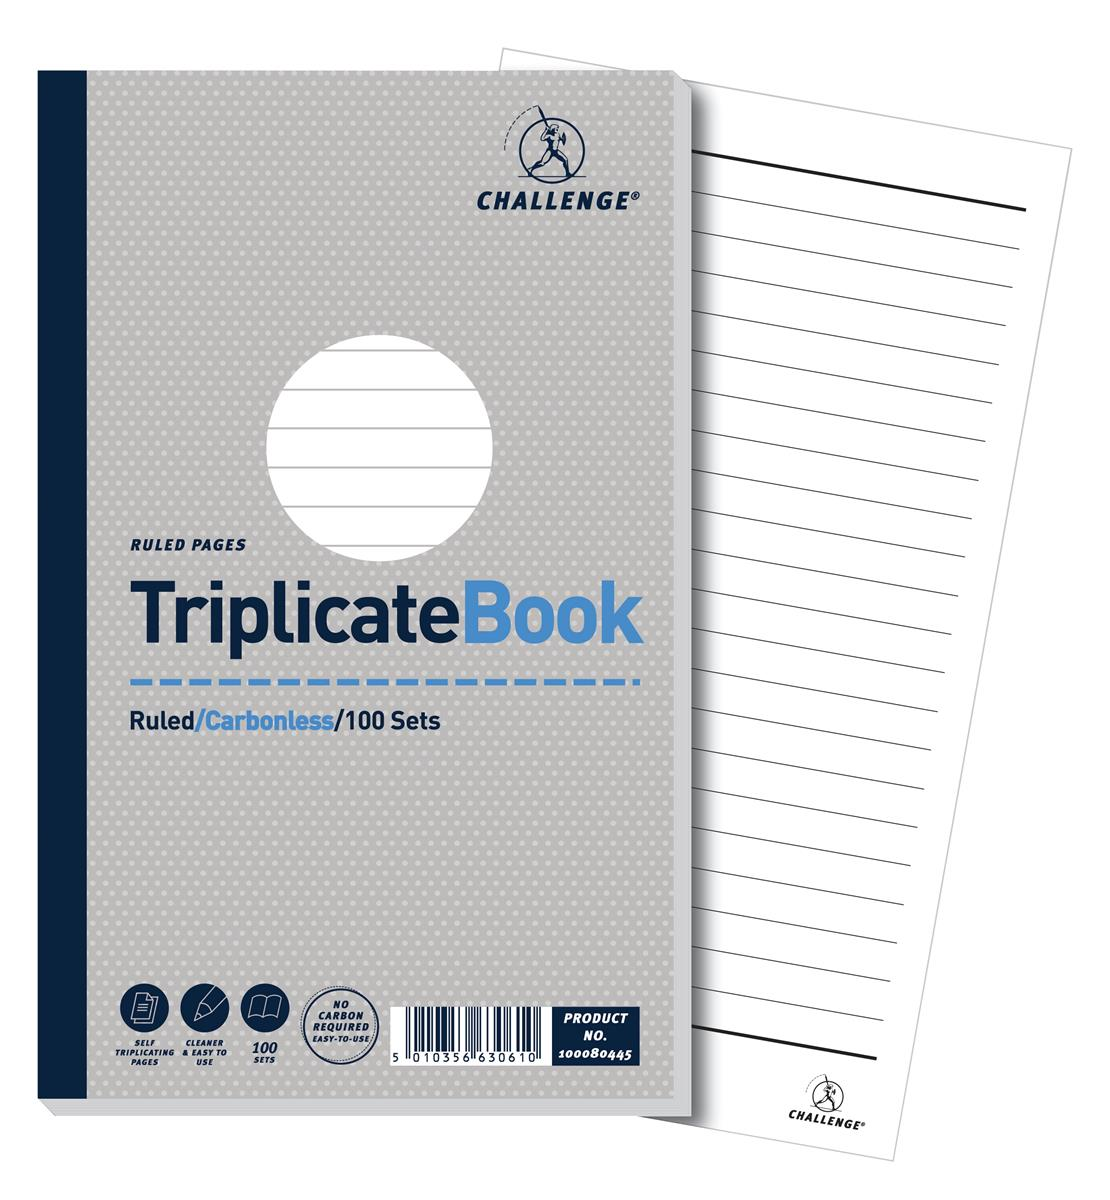 Image for Challenge Triplicate Book Carbonless Ruled 100 Sets 210x130mm Ref 100080445 [Pack 5]